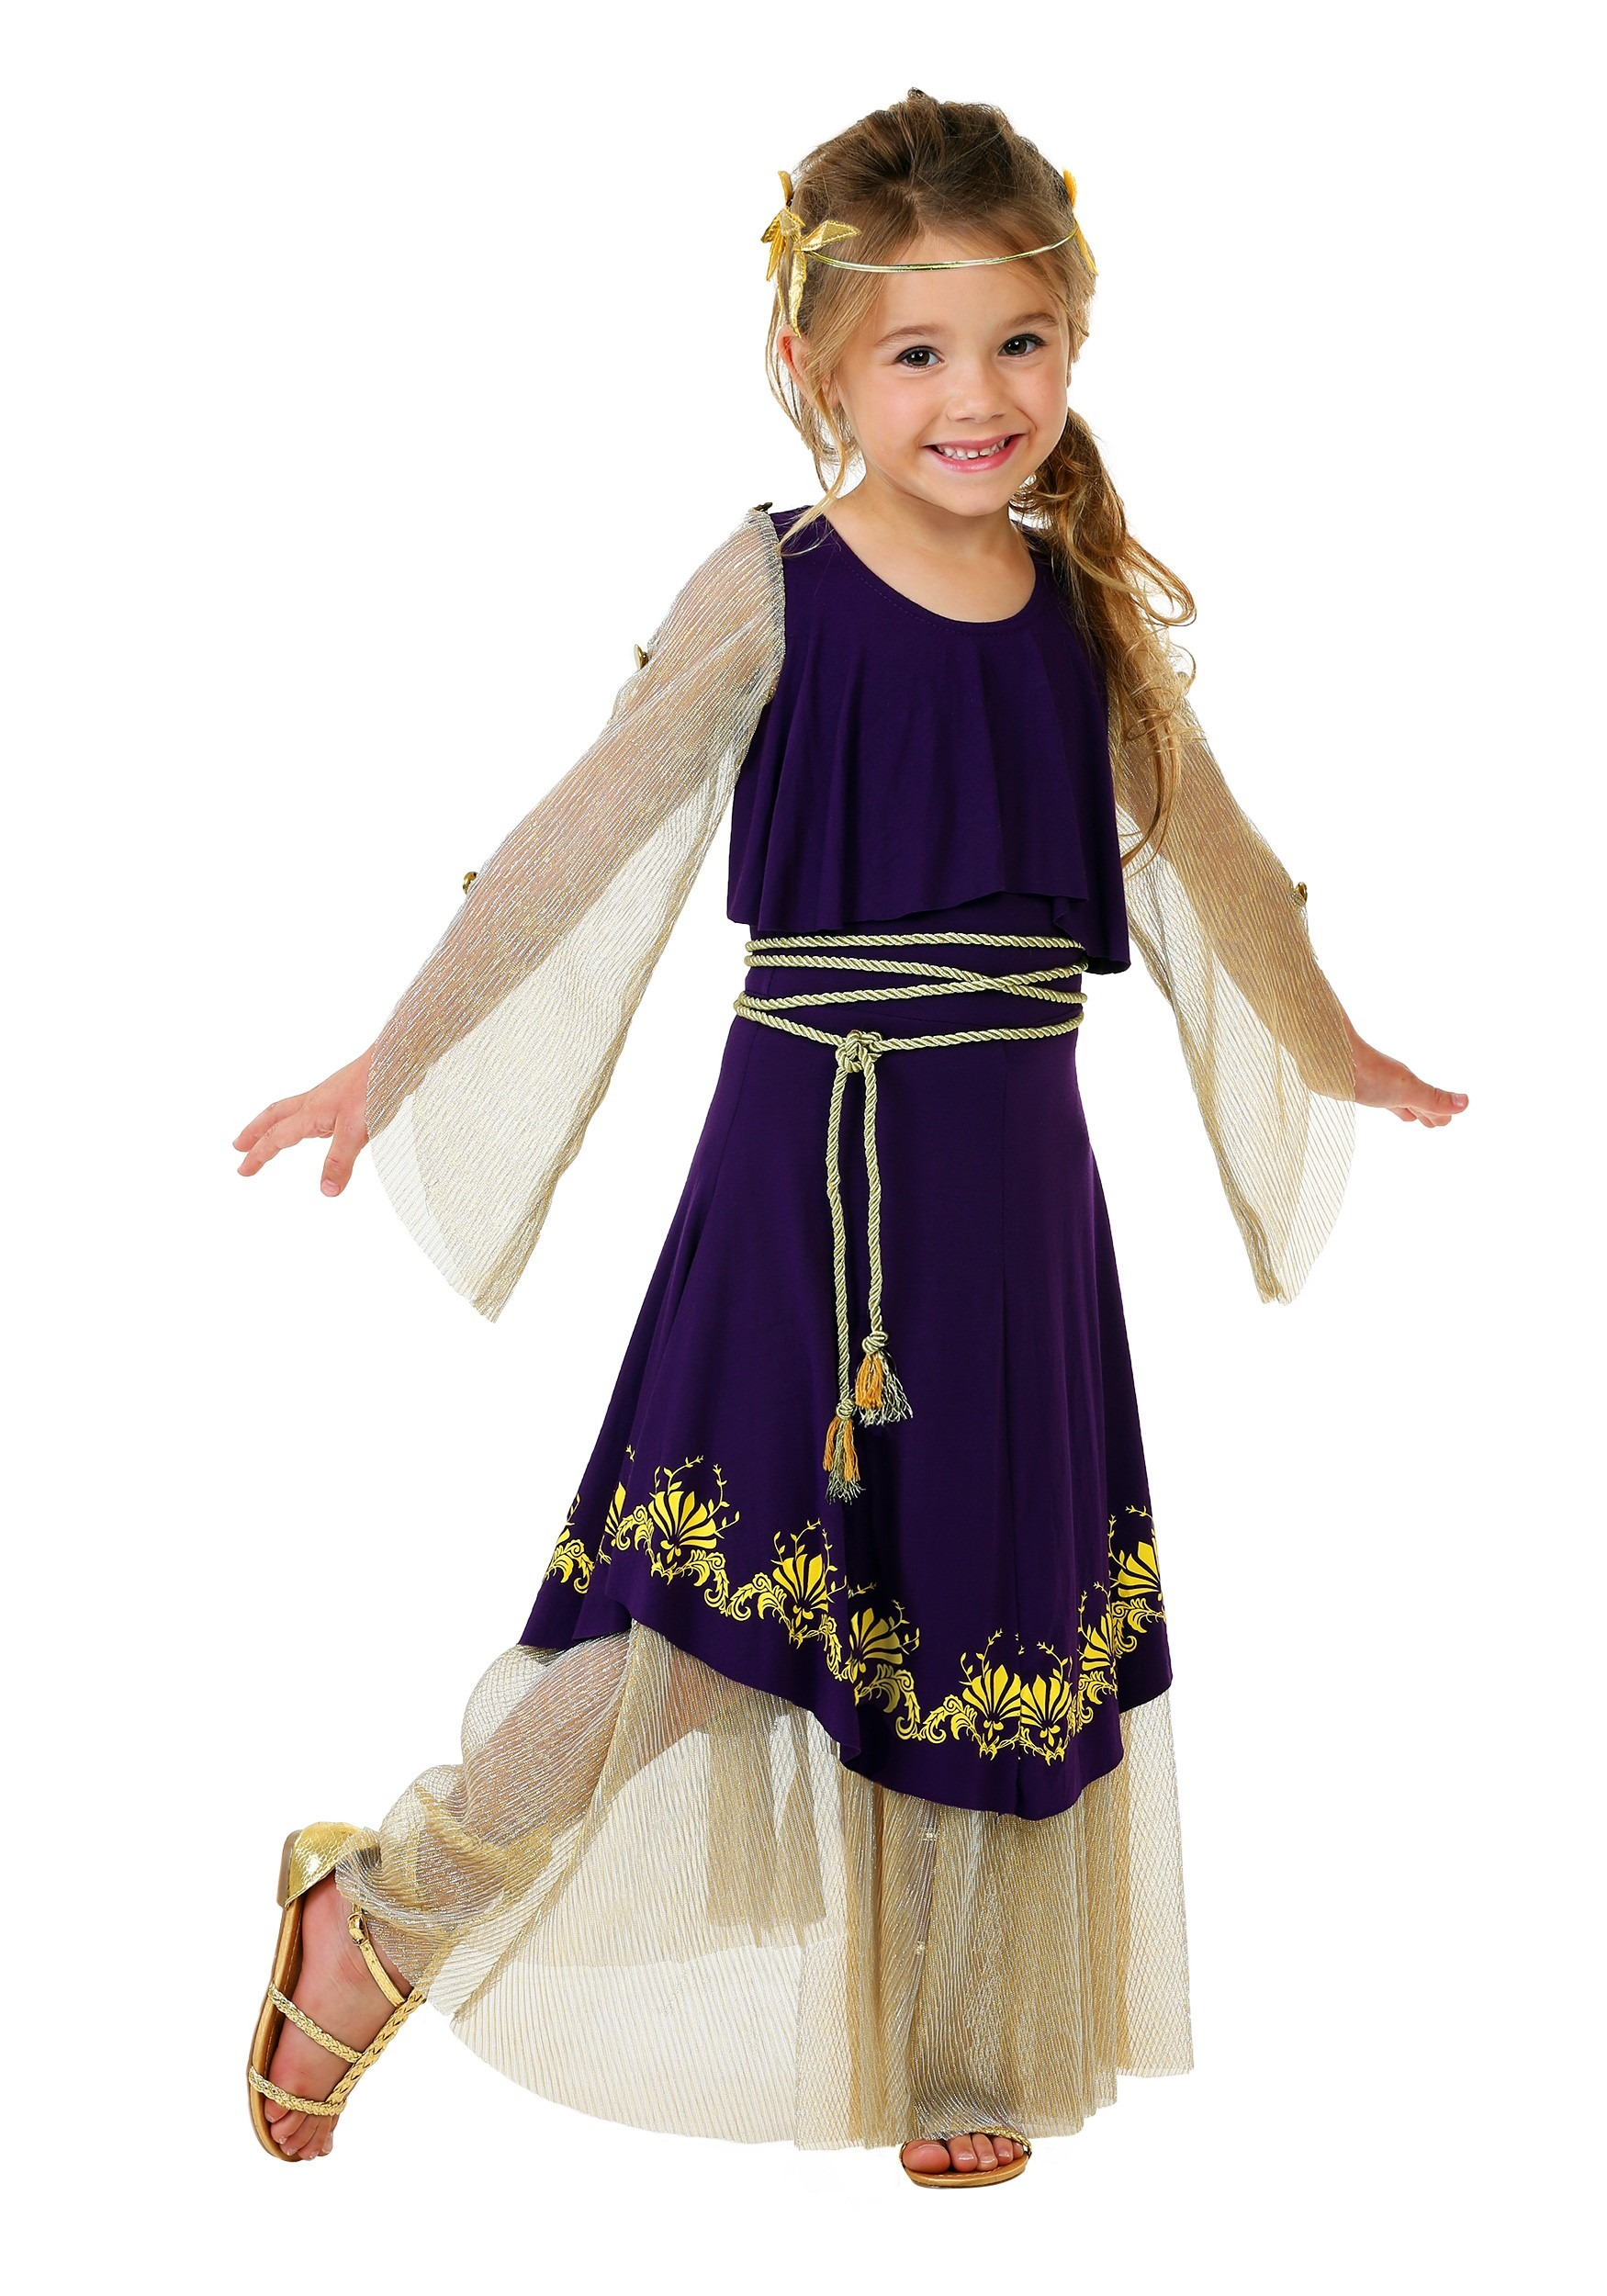 Toddler Aphrodite Goddess Costume  sc 1 st  Halloween Costumes & Egyptian u0026 Greek Goddess Costumes - HalloweenCostumes.com